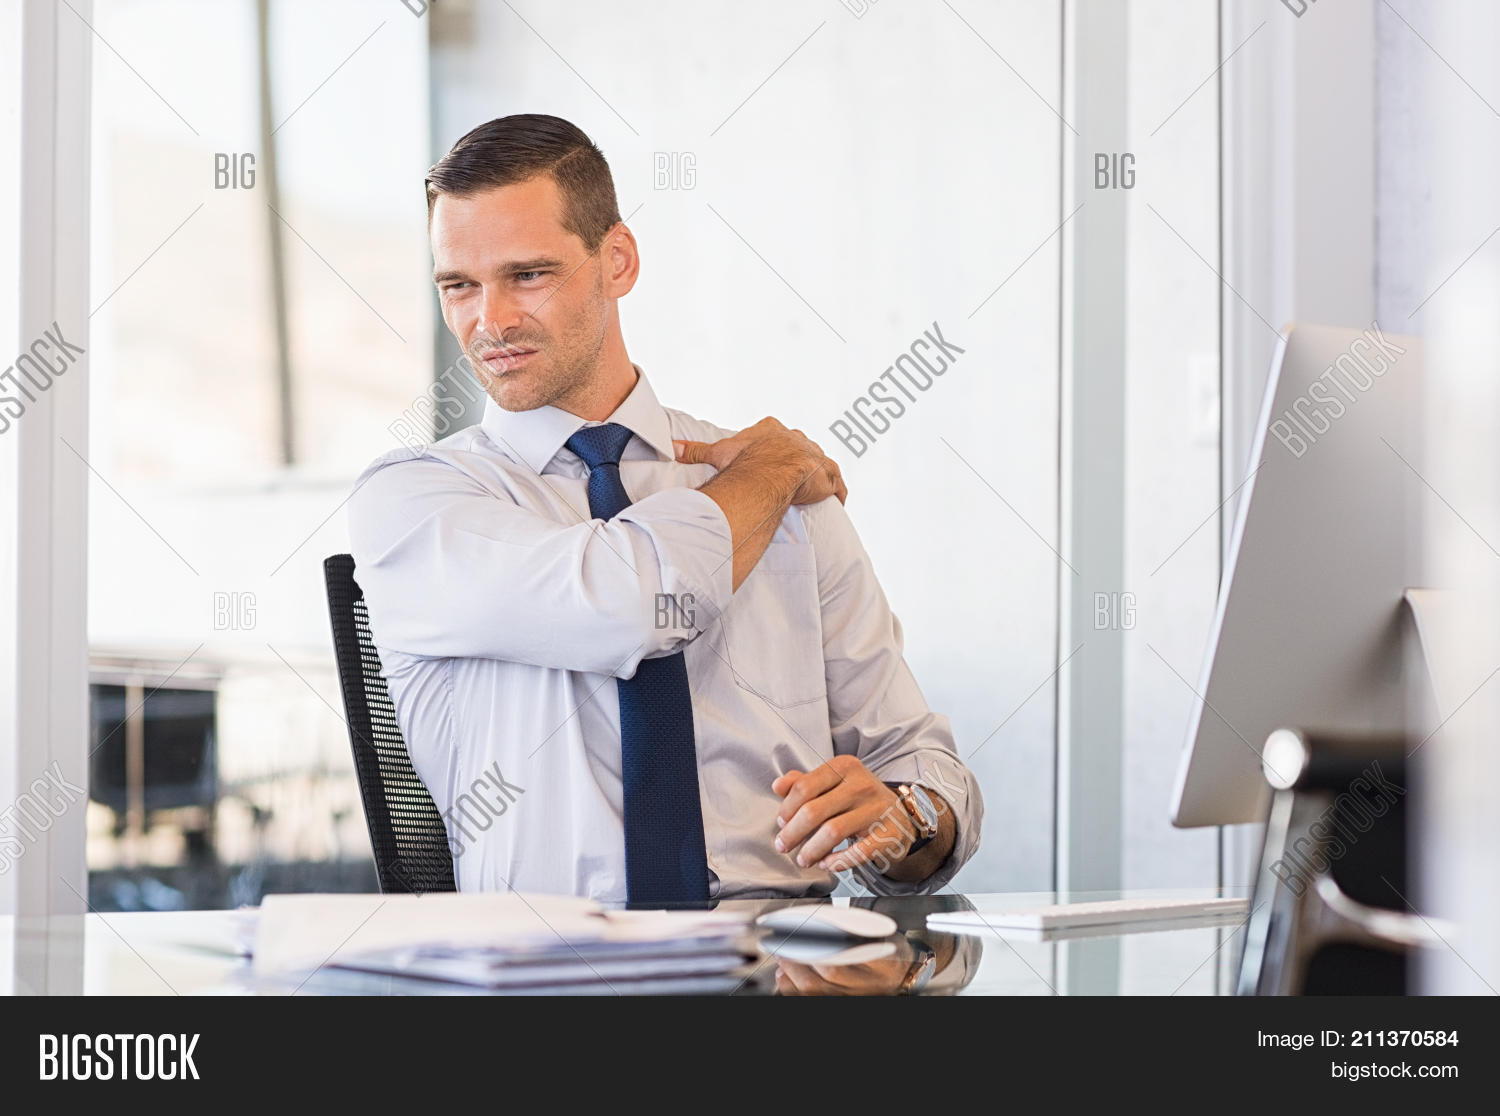 back,back pain,backpain,businessman,computer,contracture,cramp,desk,employee,fatigue,feeling,frustration,health,holding,ill,injury,job,lawyer,medical,muscle,office,overwork,overworked,pain,shoulder,sick,sitting,stress,stressed,suffer,tension,tired,unhappy,work,worried